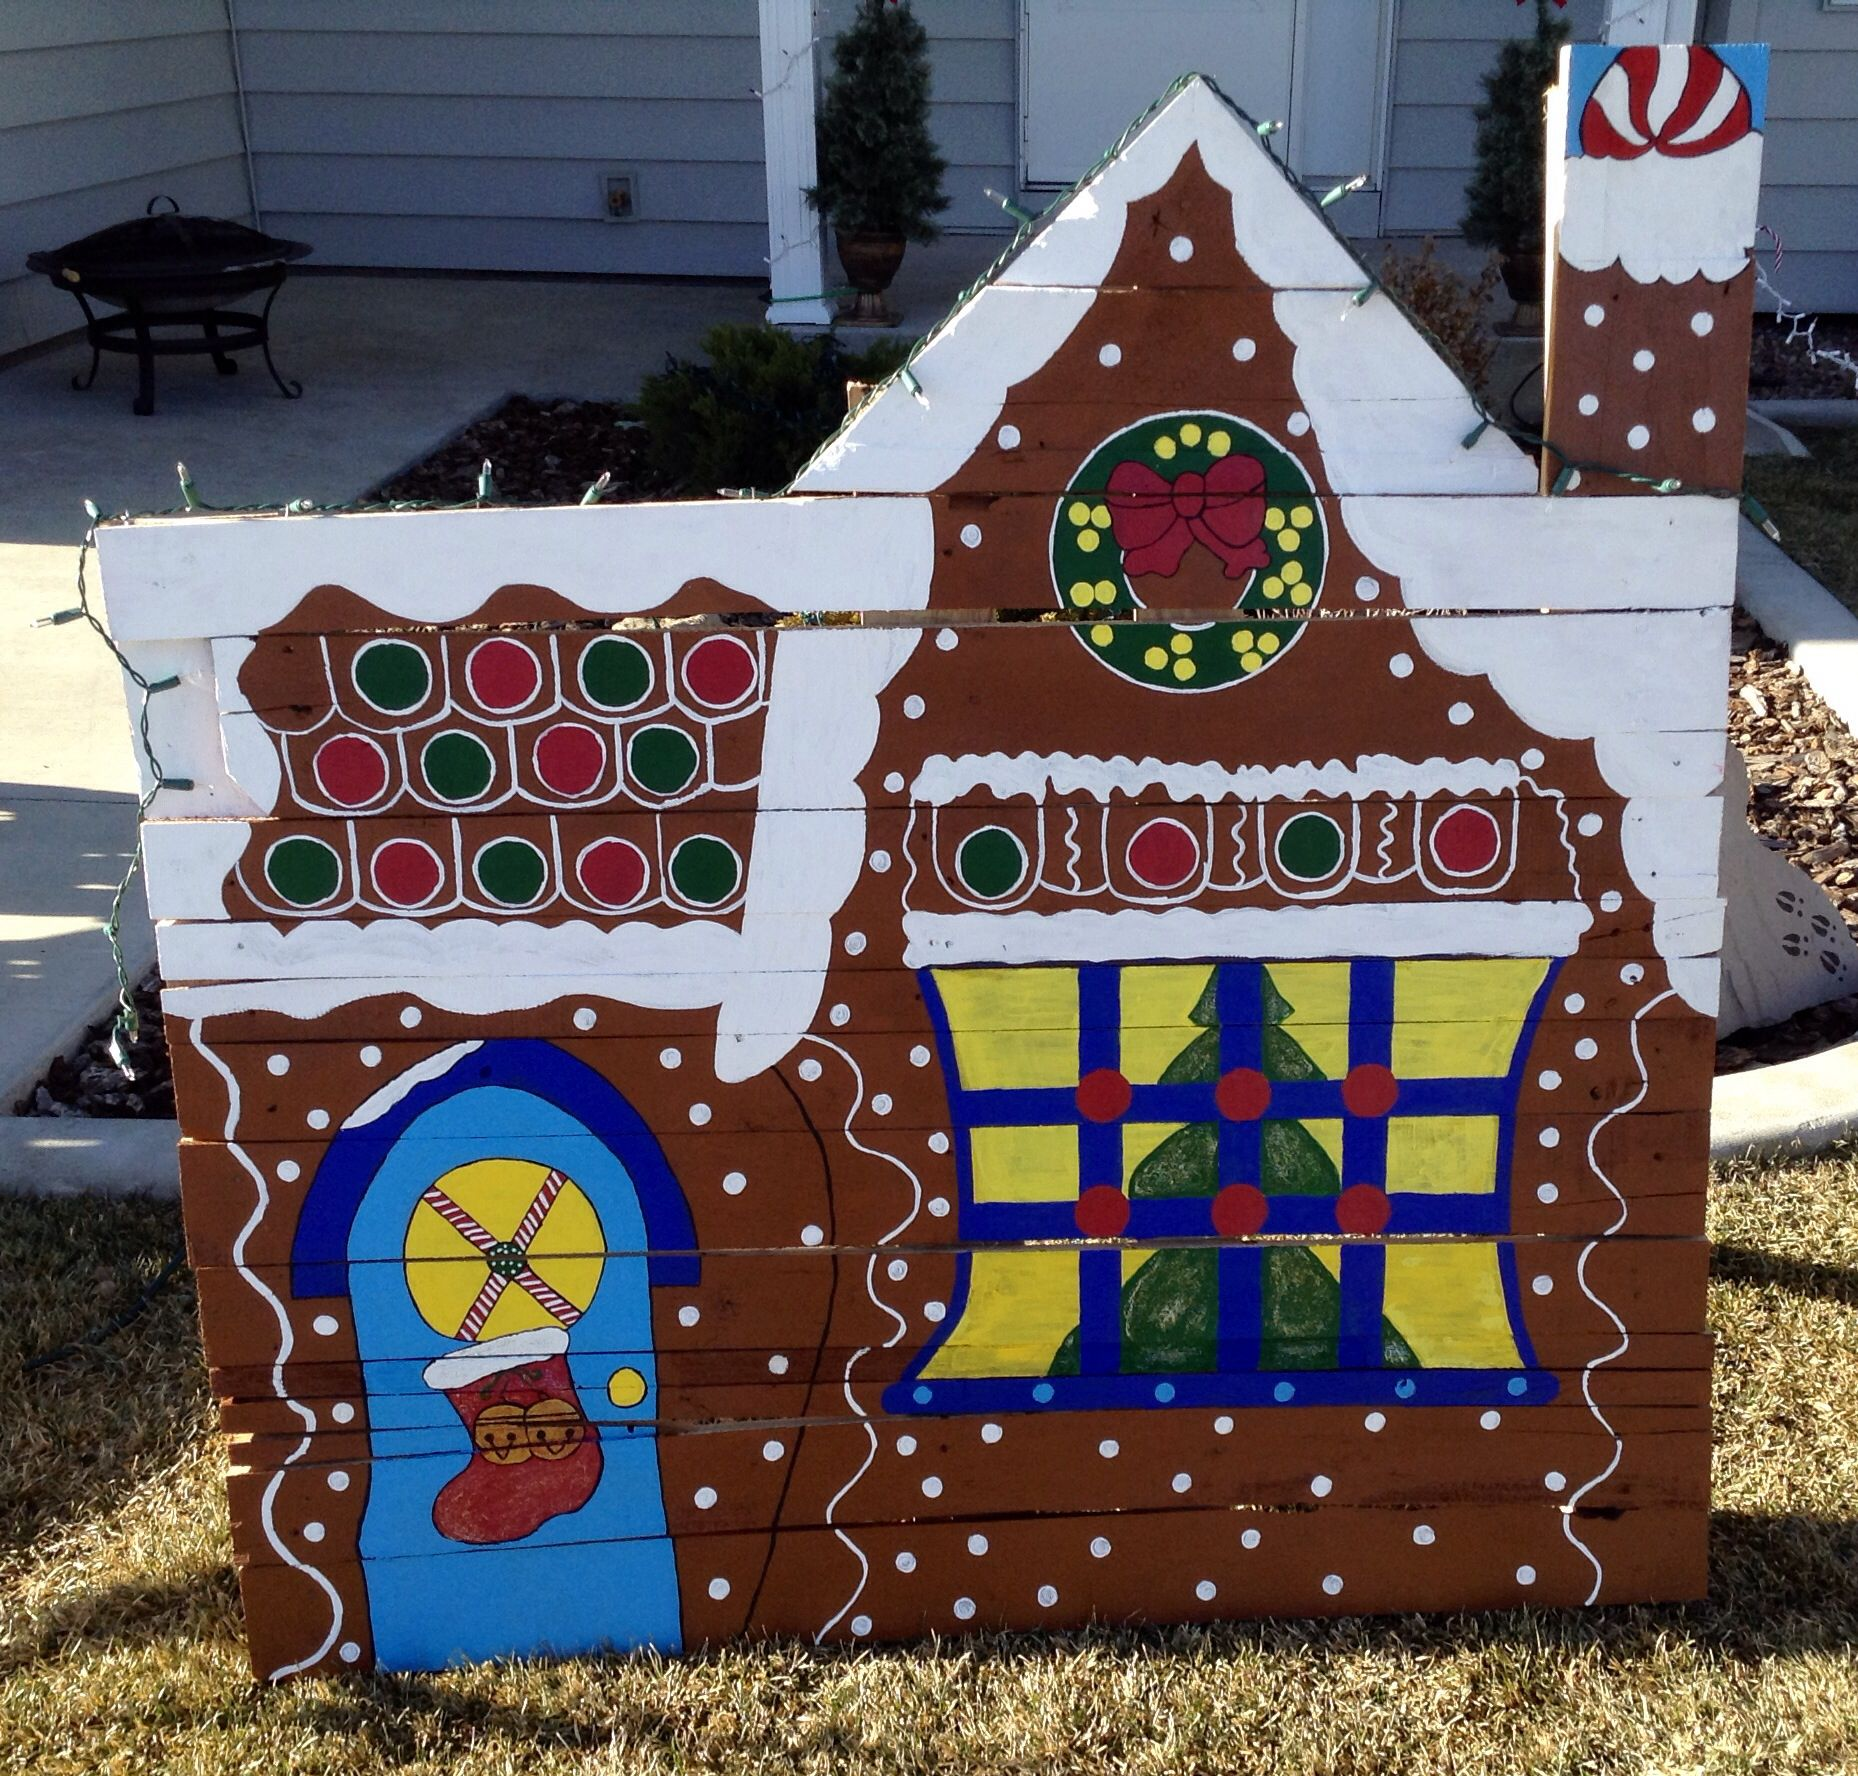 Outdoor Wooden Christmas Yard Decorations: Gingerbread House Made From Pallet. Christmas Or Holiday